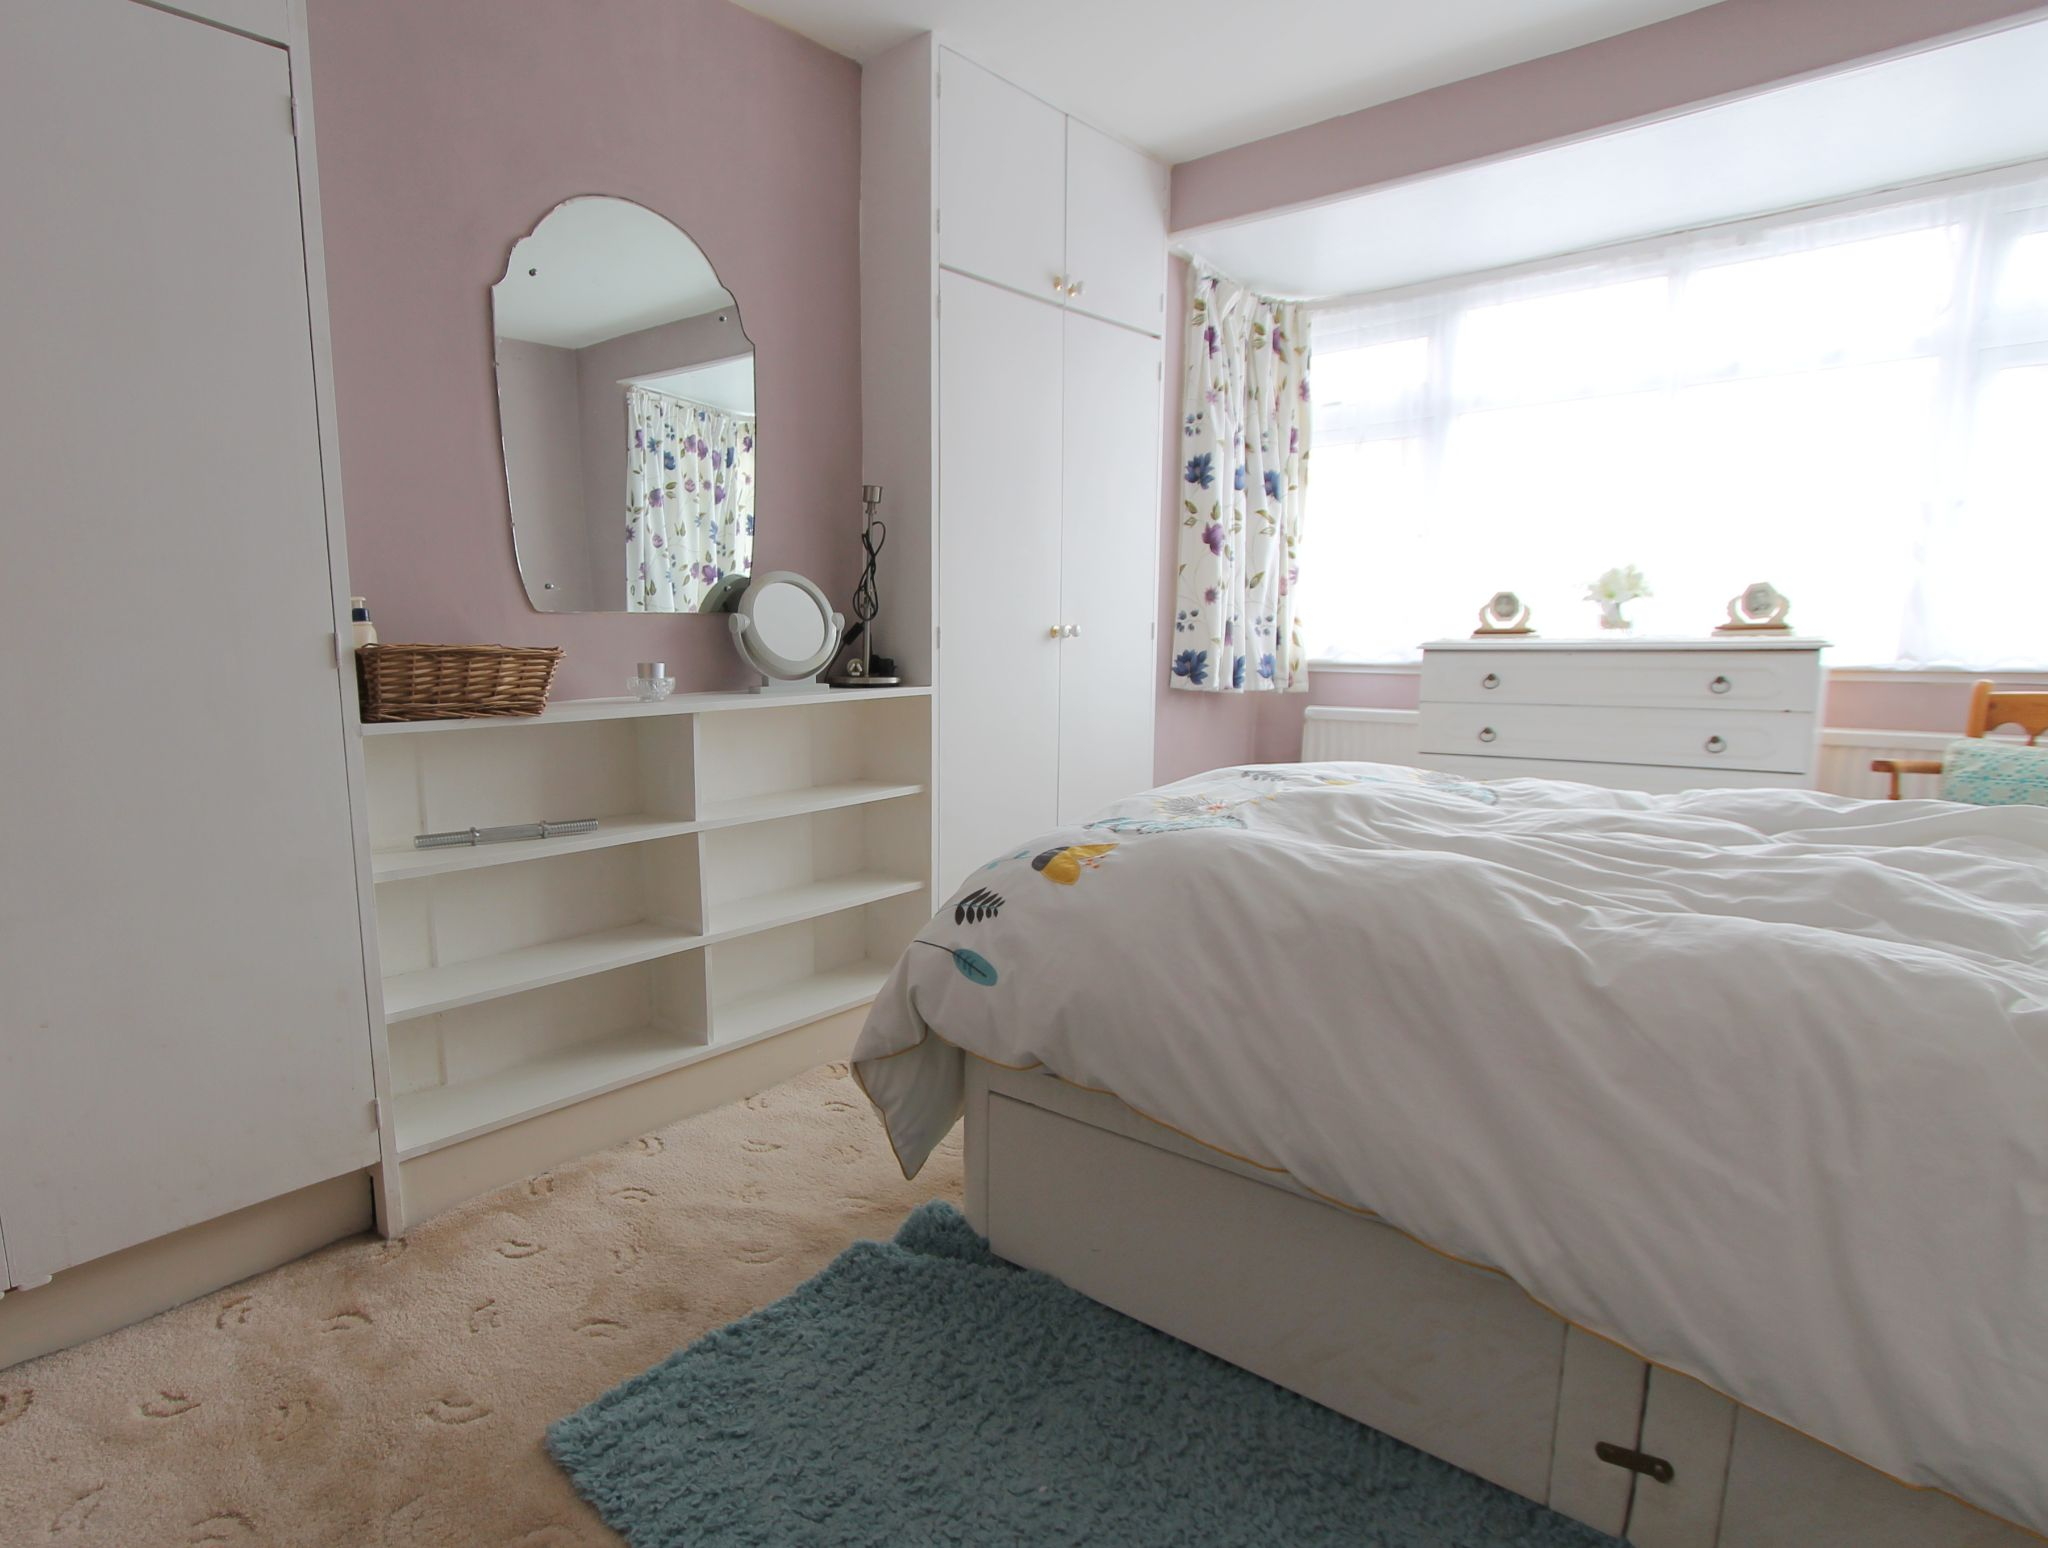 3 bedroom mid terraced house To Let in Sutton - Photograph 6.